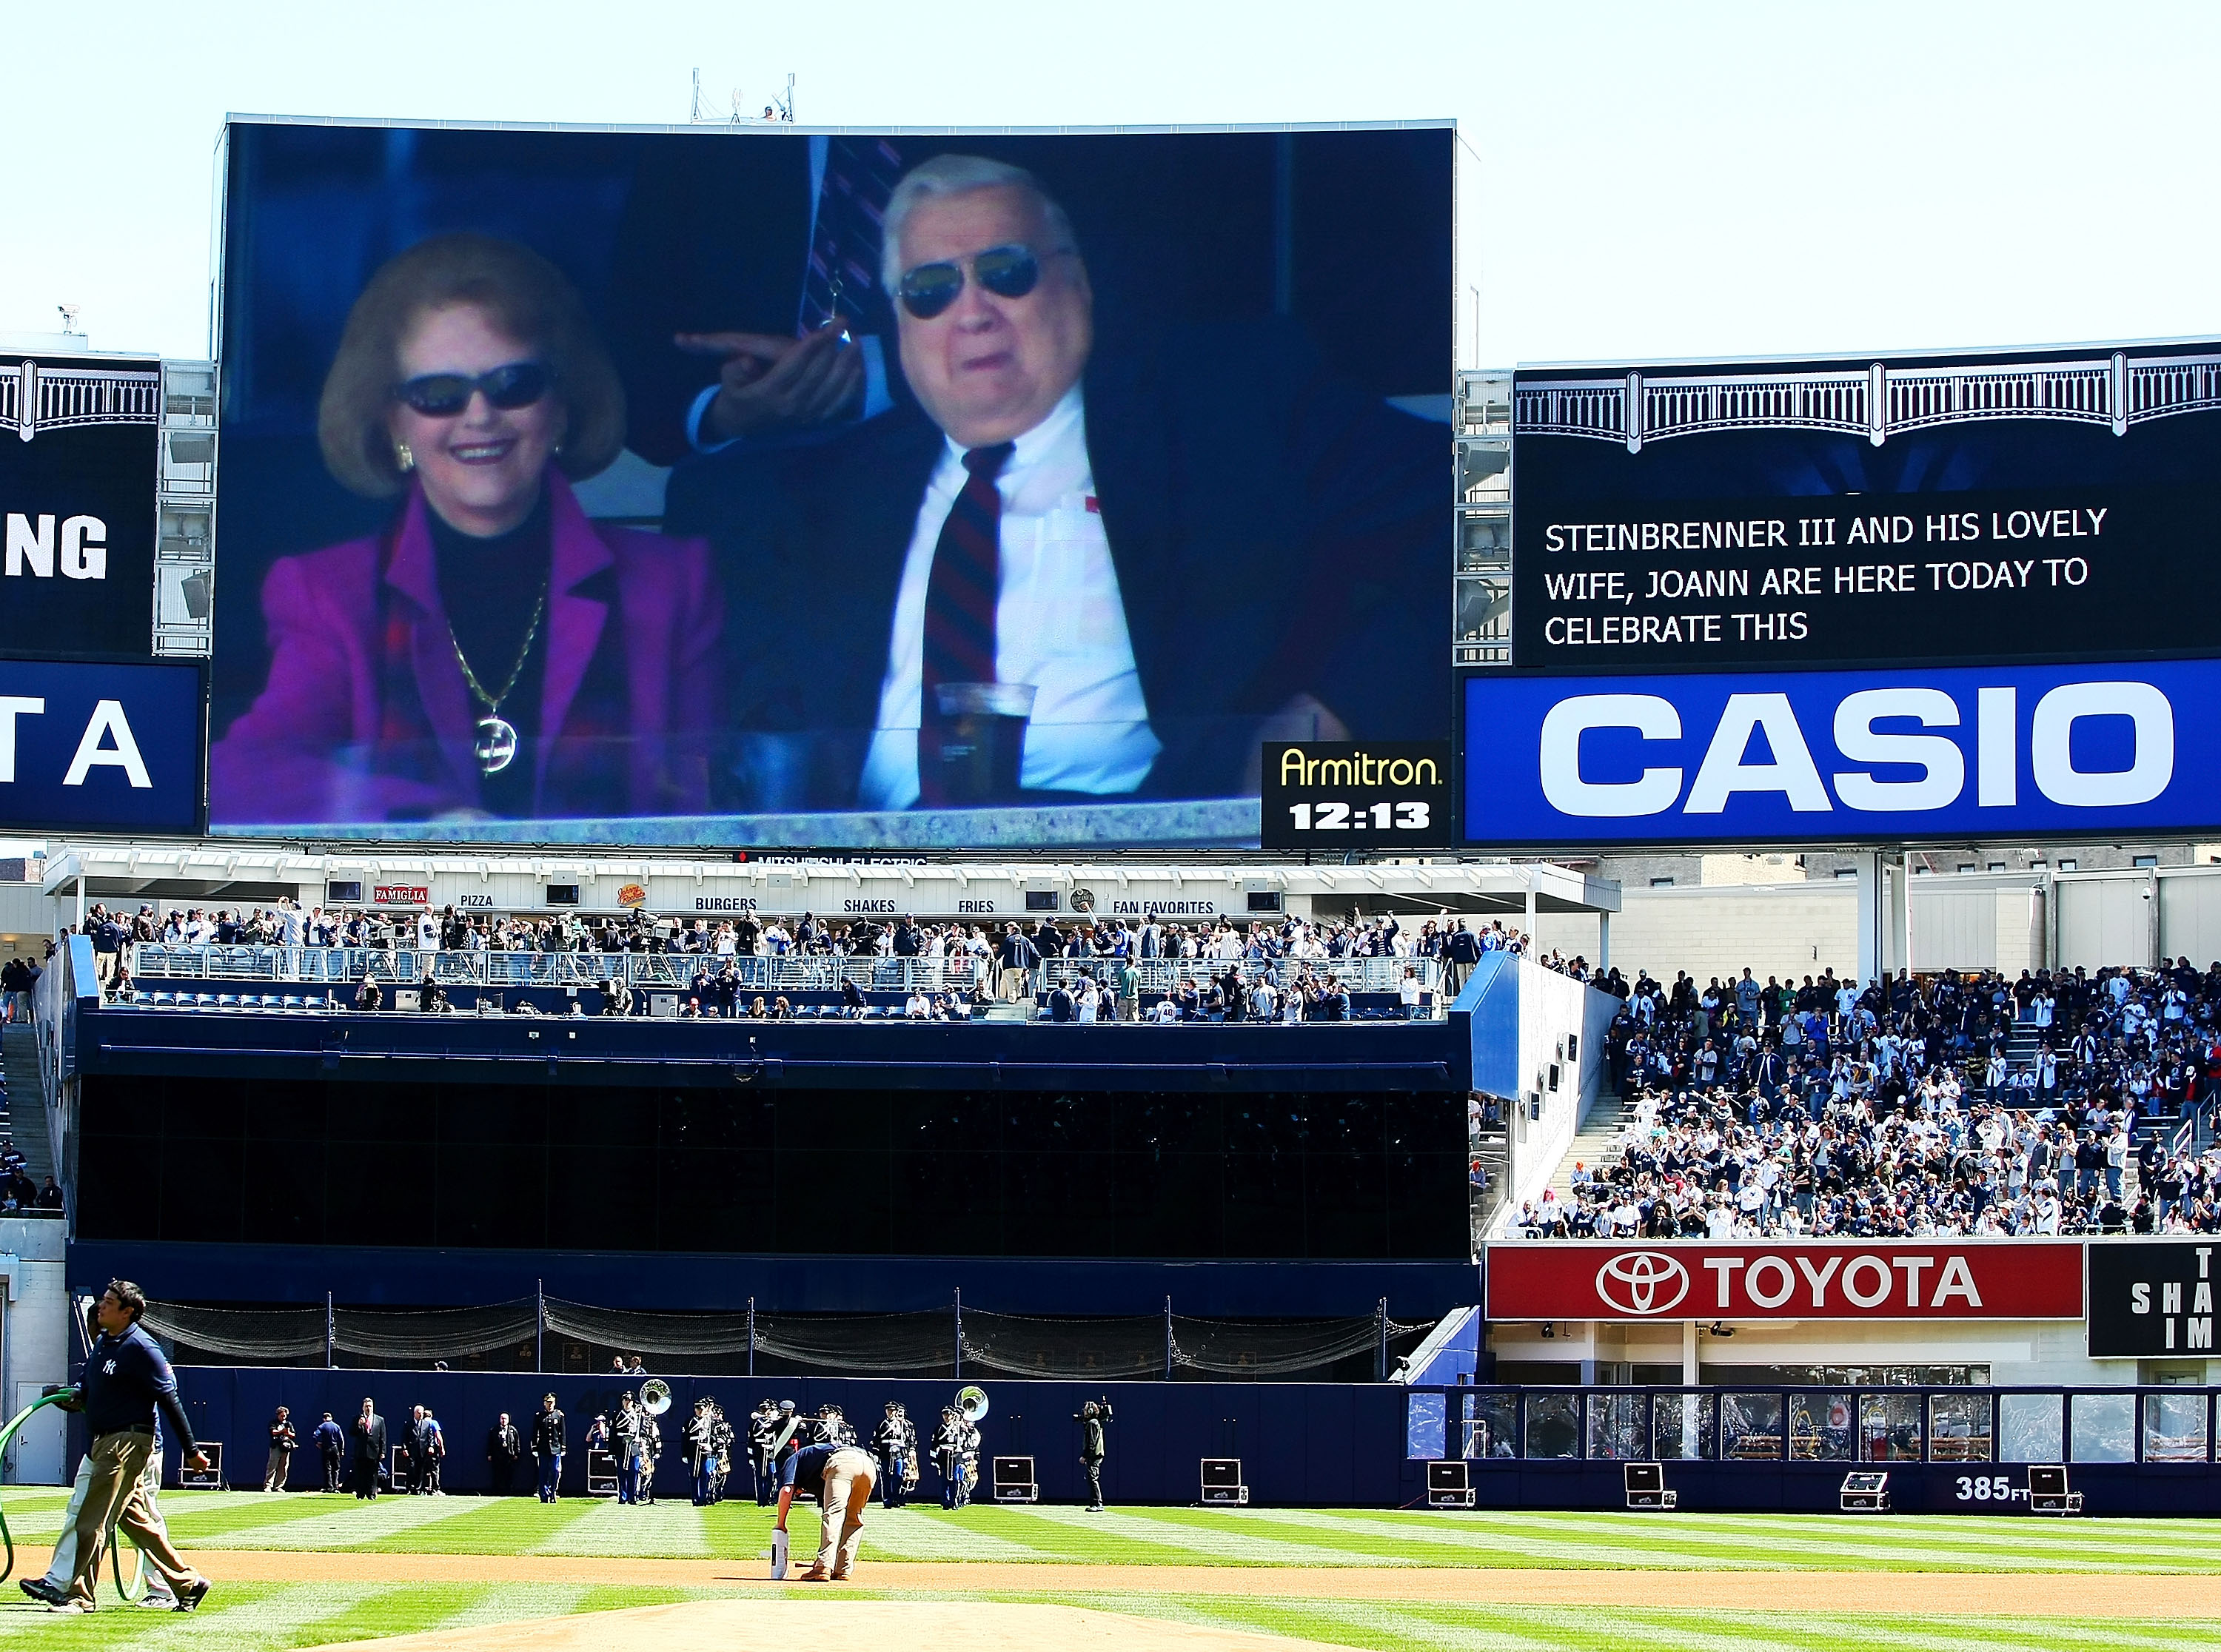 NEW YORK - APRIL 16:  Owner George Steinbrenner (R) is seen on the jumbotron during an opening day ceremony at the new Yankee Stadium on April 16, 2009 in the Bronx borough of New York City. This is the first regular season MLB game being played at the ne